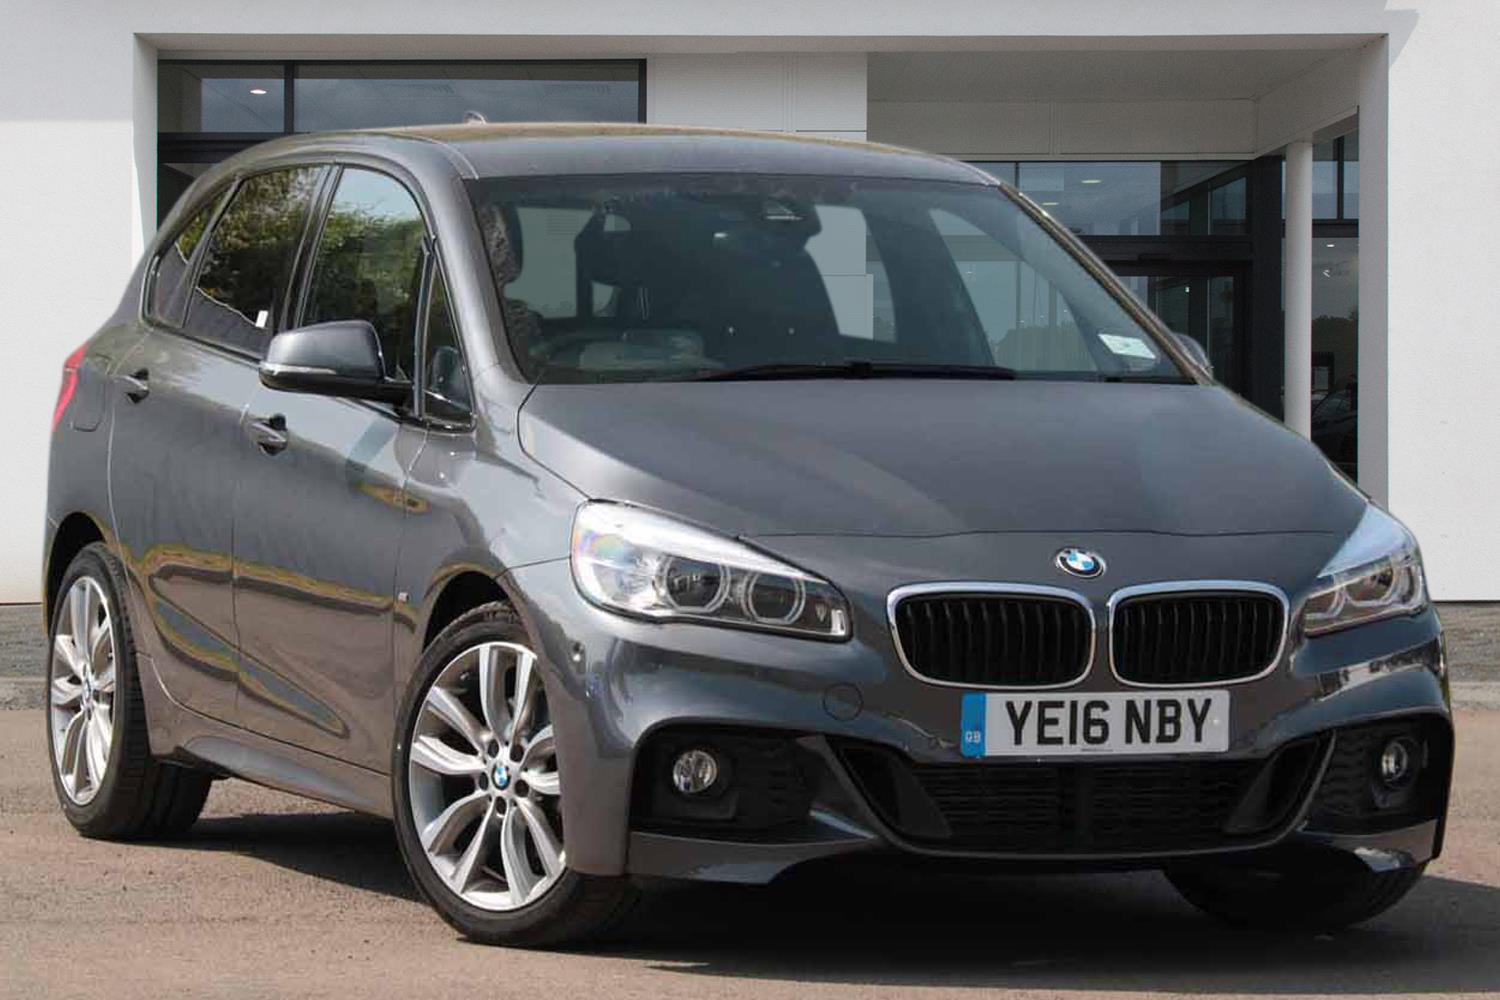 BMW 2 Series Active Tourer 5-Door YE16NBY - Image 2